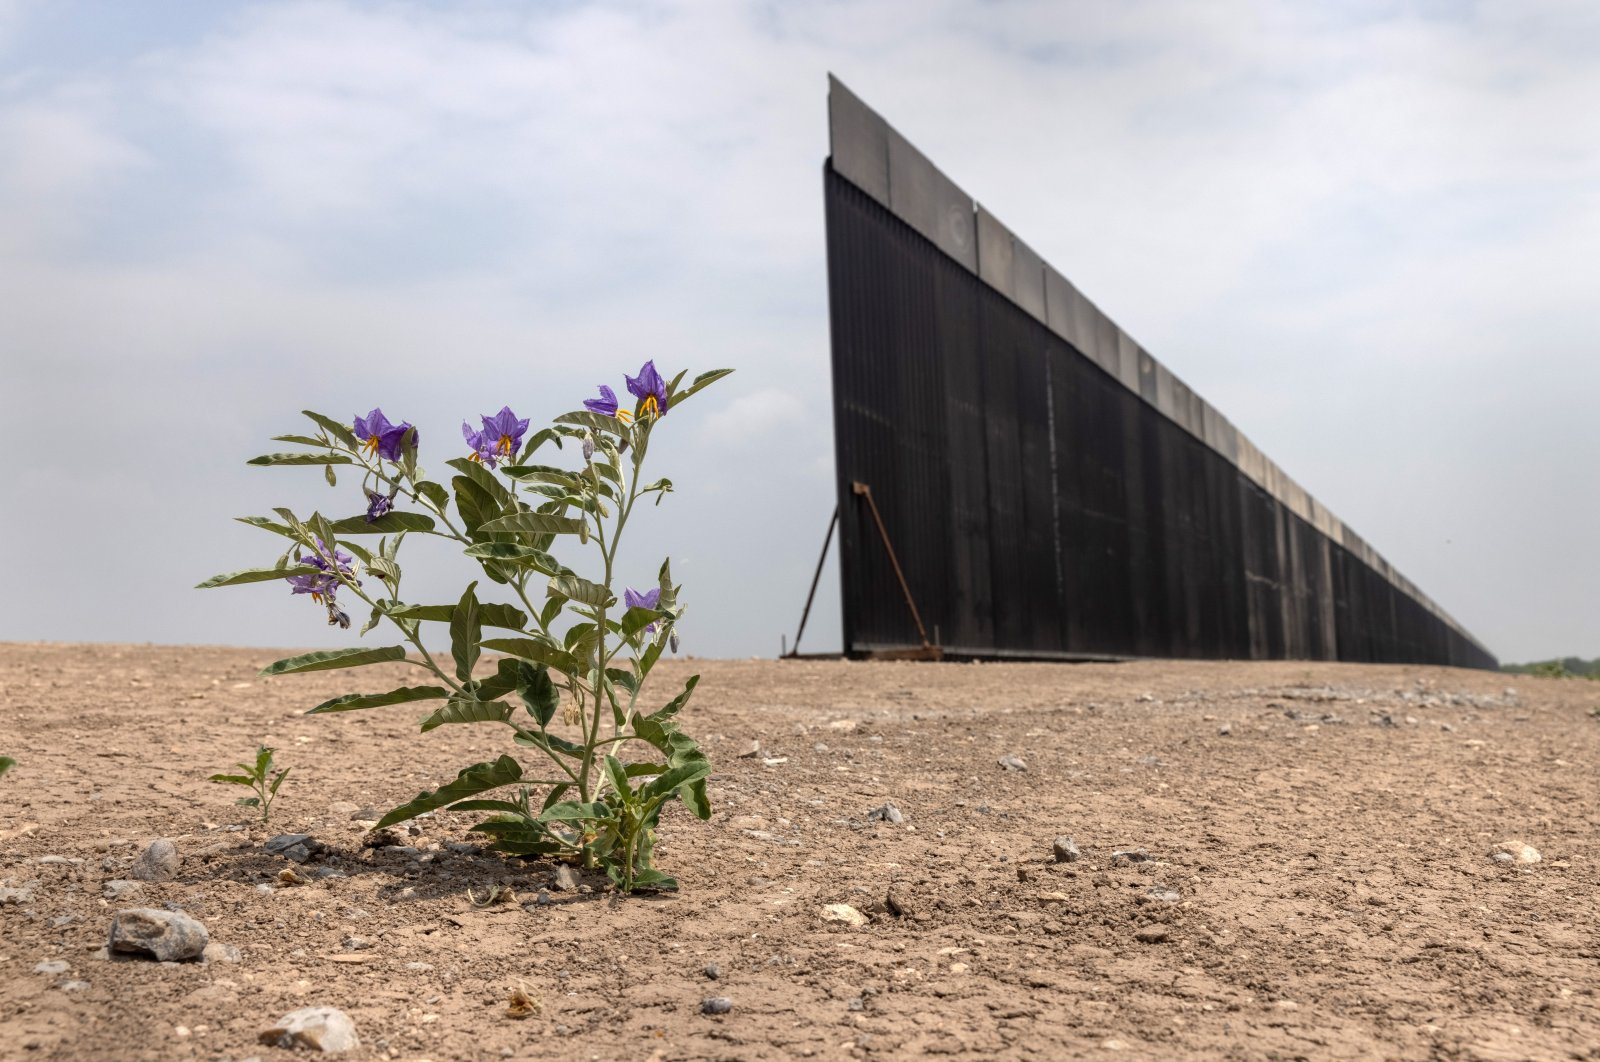 A portion of the U.S.-Mexico border wall stands unfinished, near La Joya, Texas, U.S., April 14, 2021. (Photo by Getty Images)